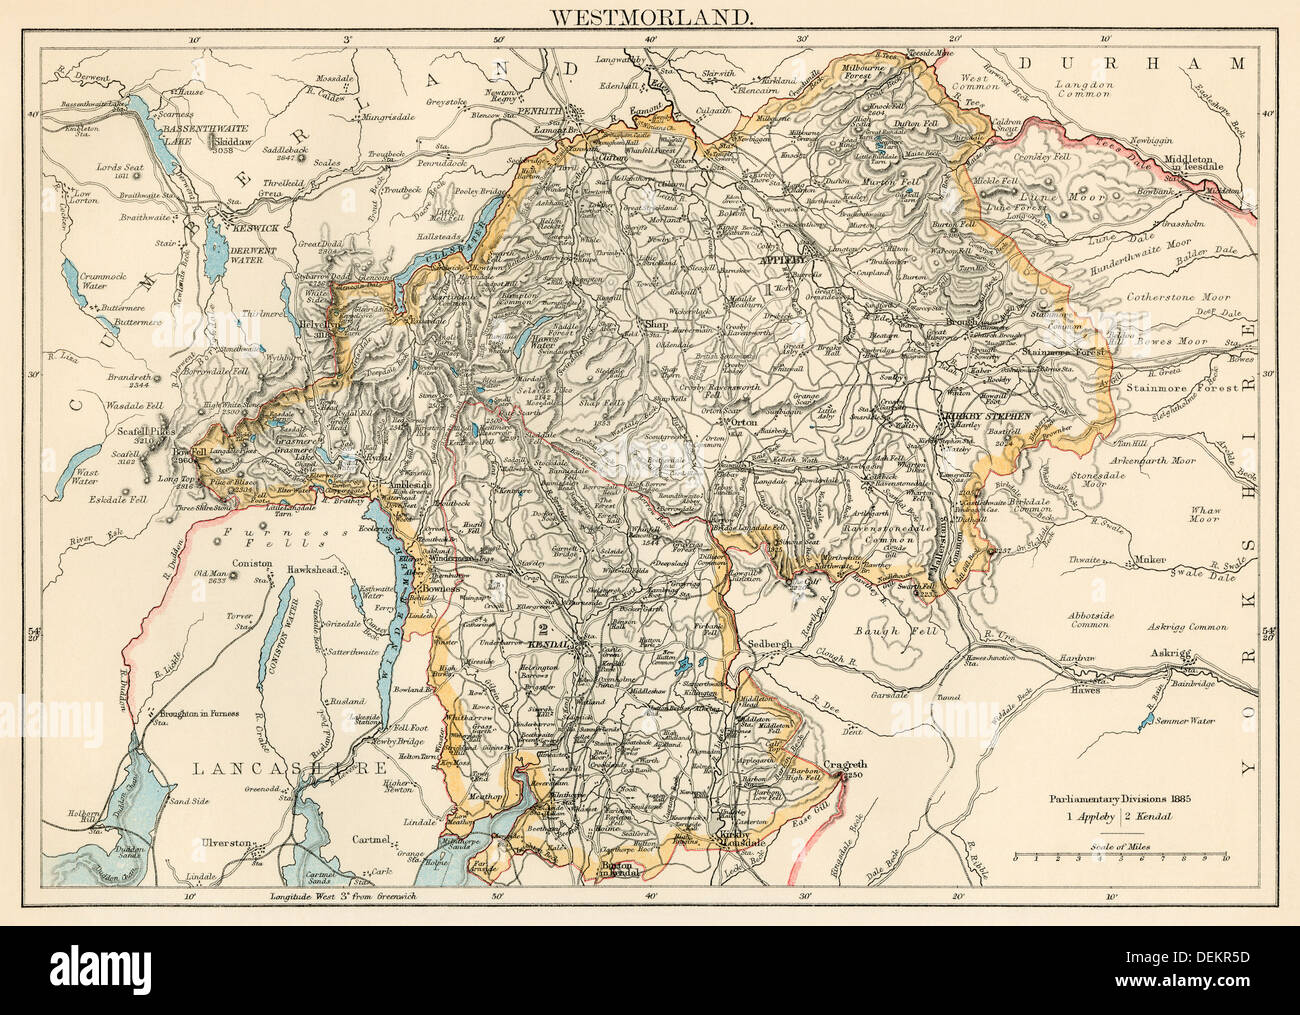 Map of Westmorland, England, 1870s. Color lithograph - Stock Image